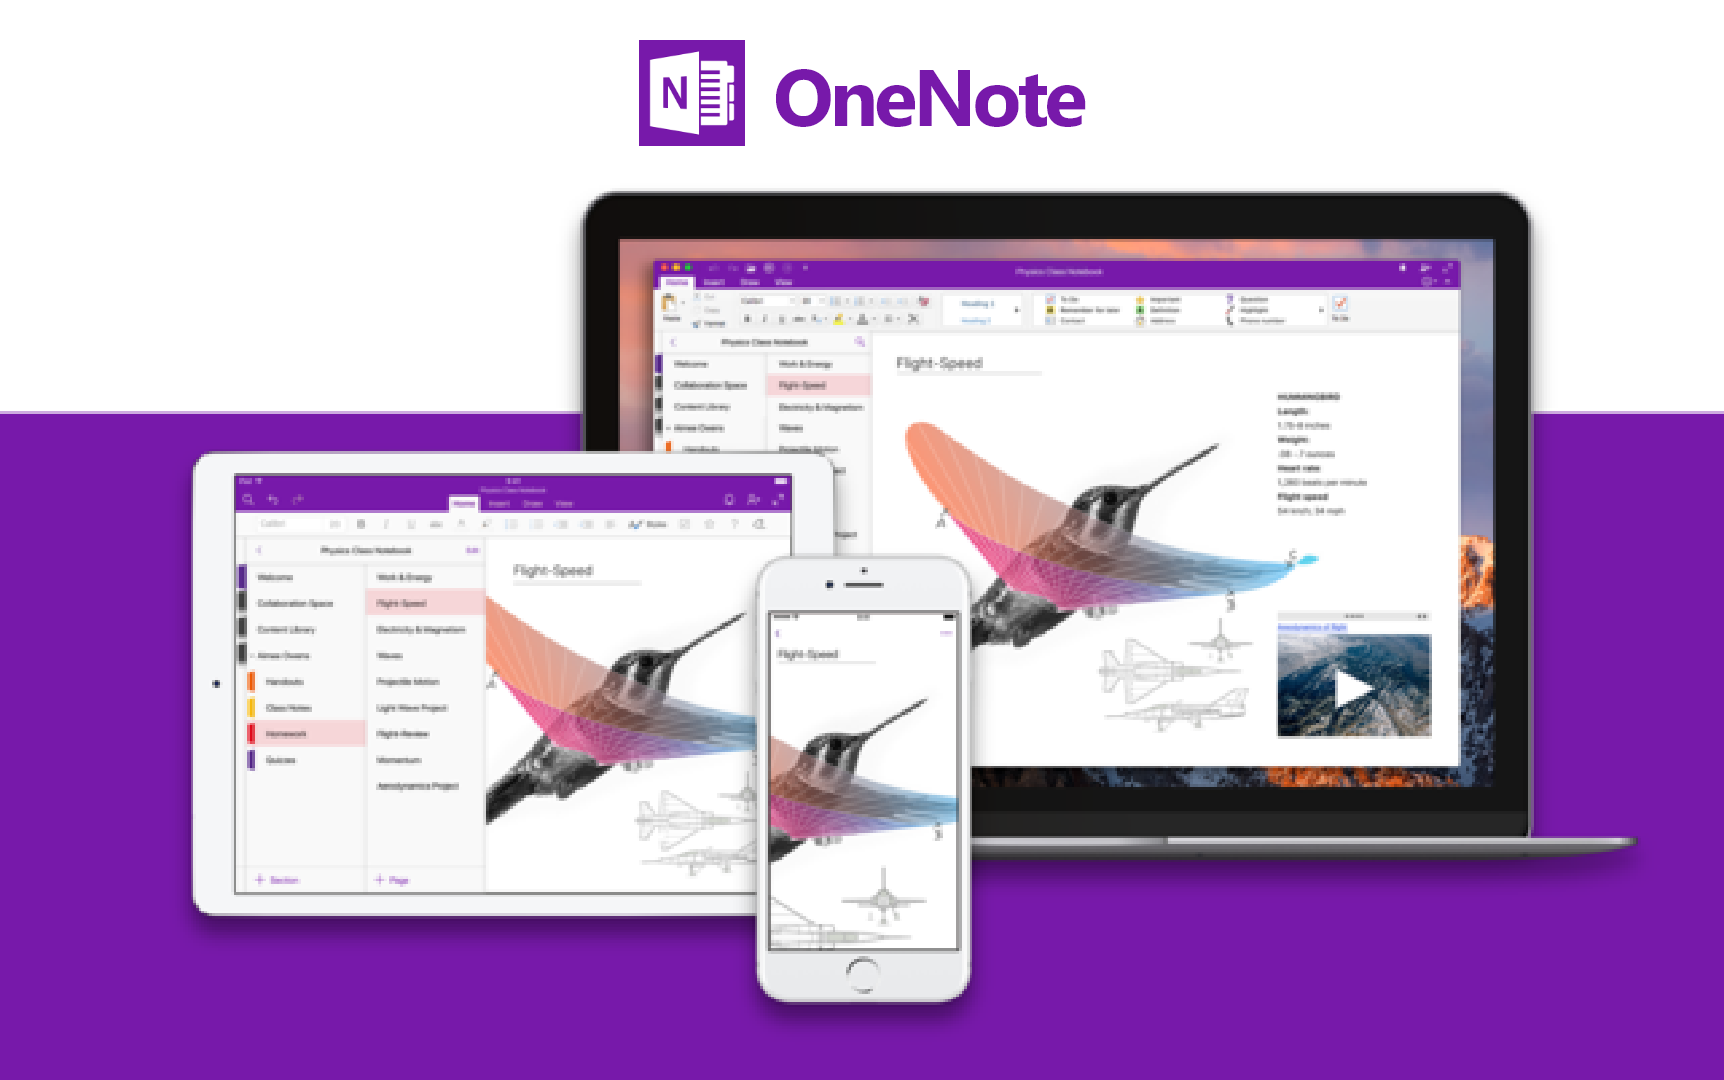 Office 2019: OneNote is going UWP only